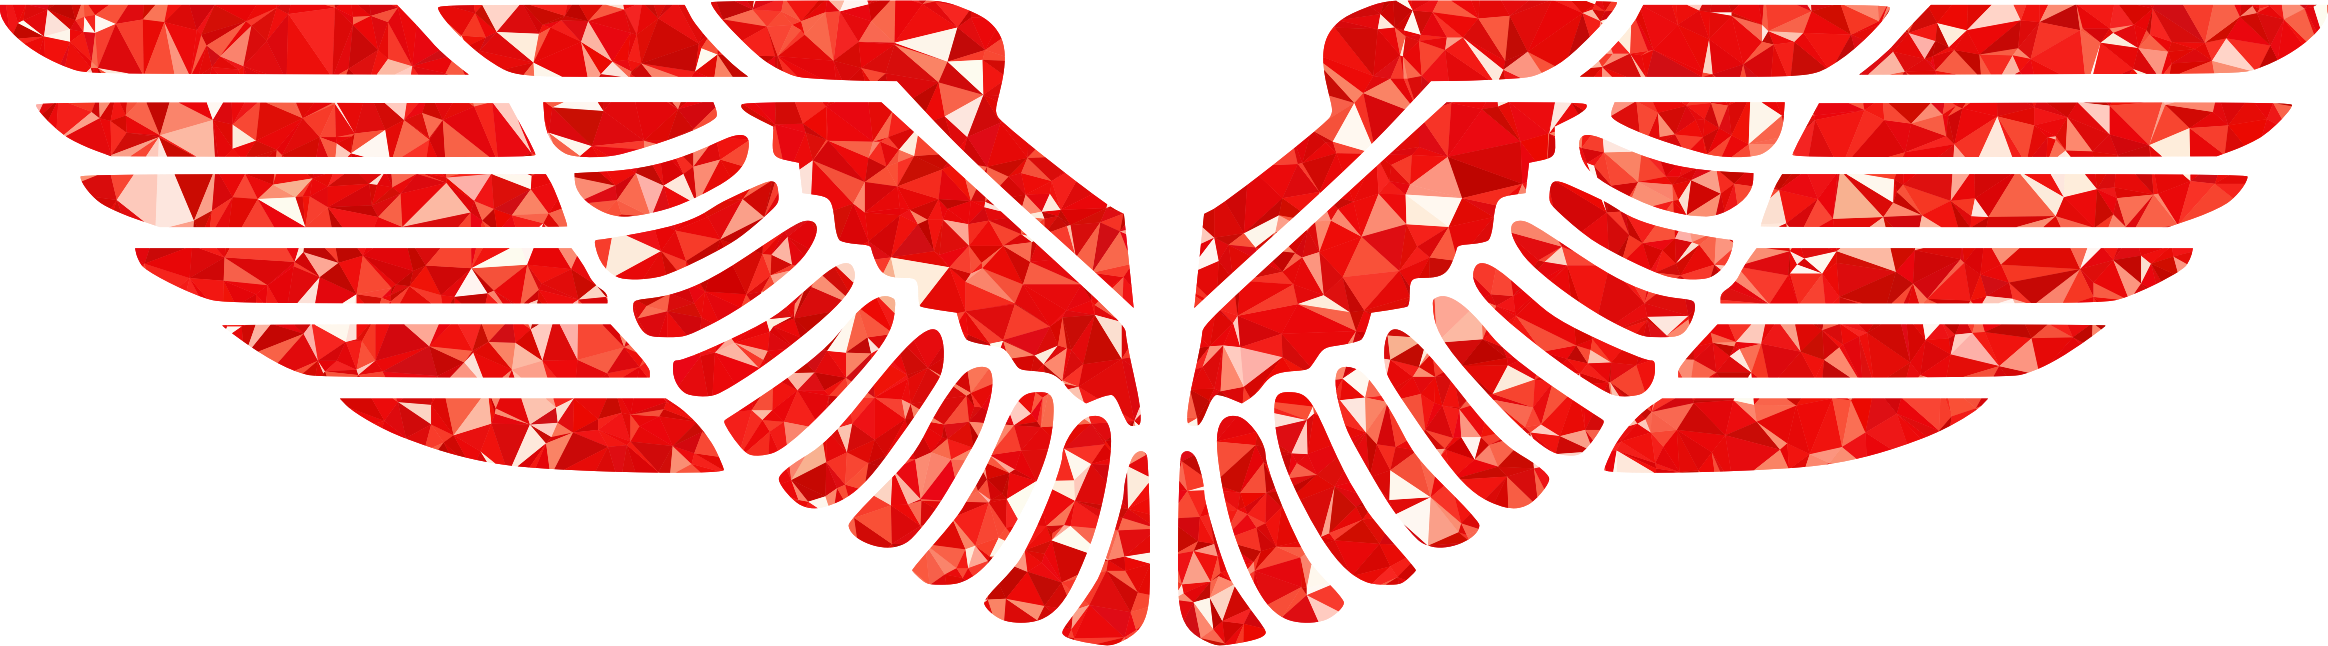 Ruby wings big image. Eagle clipart red